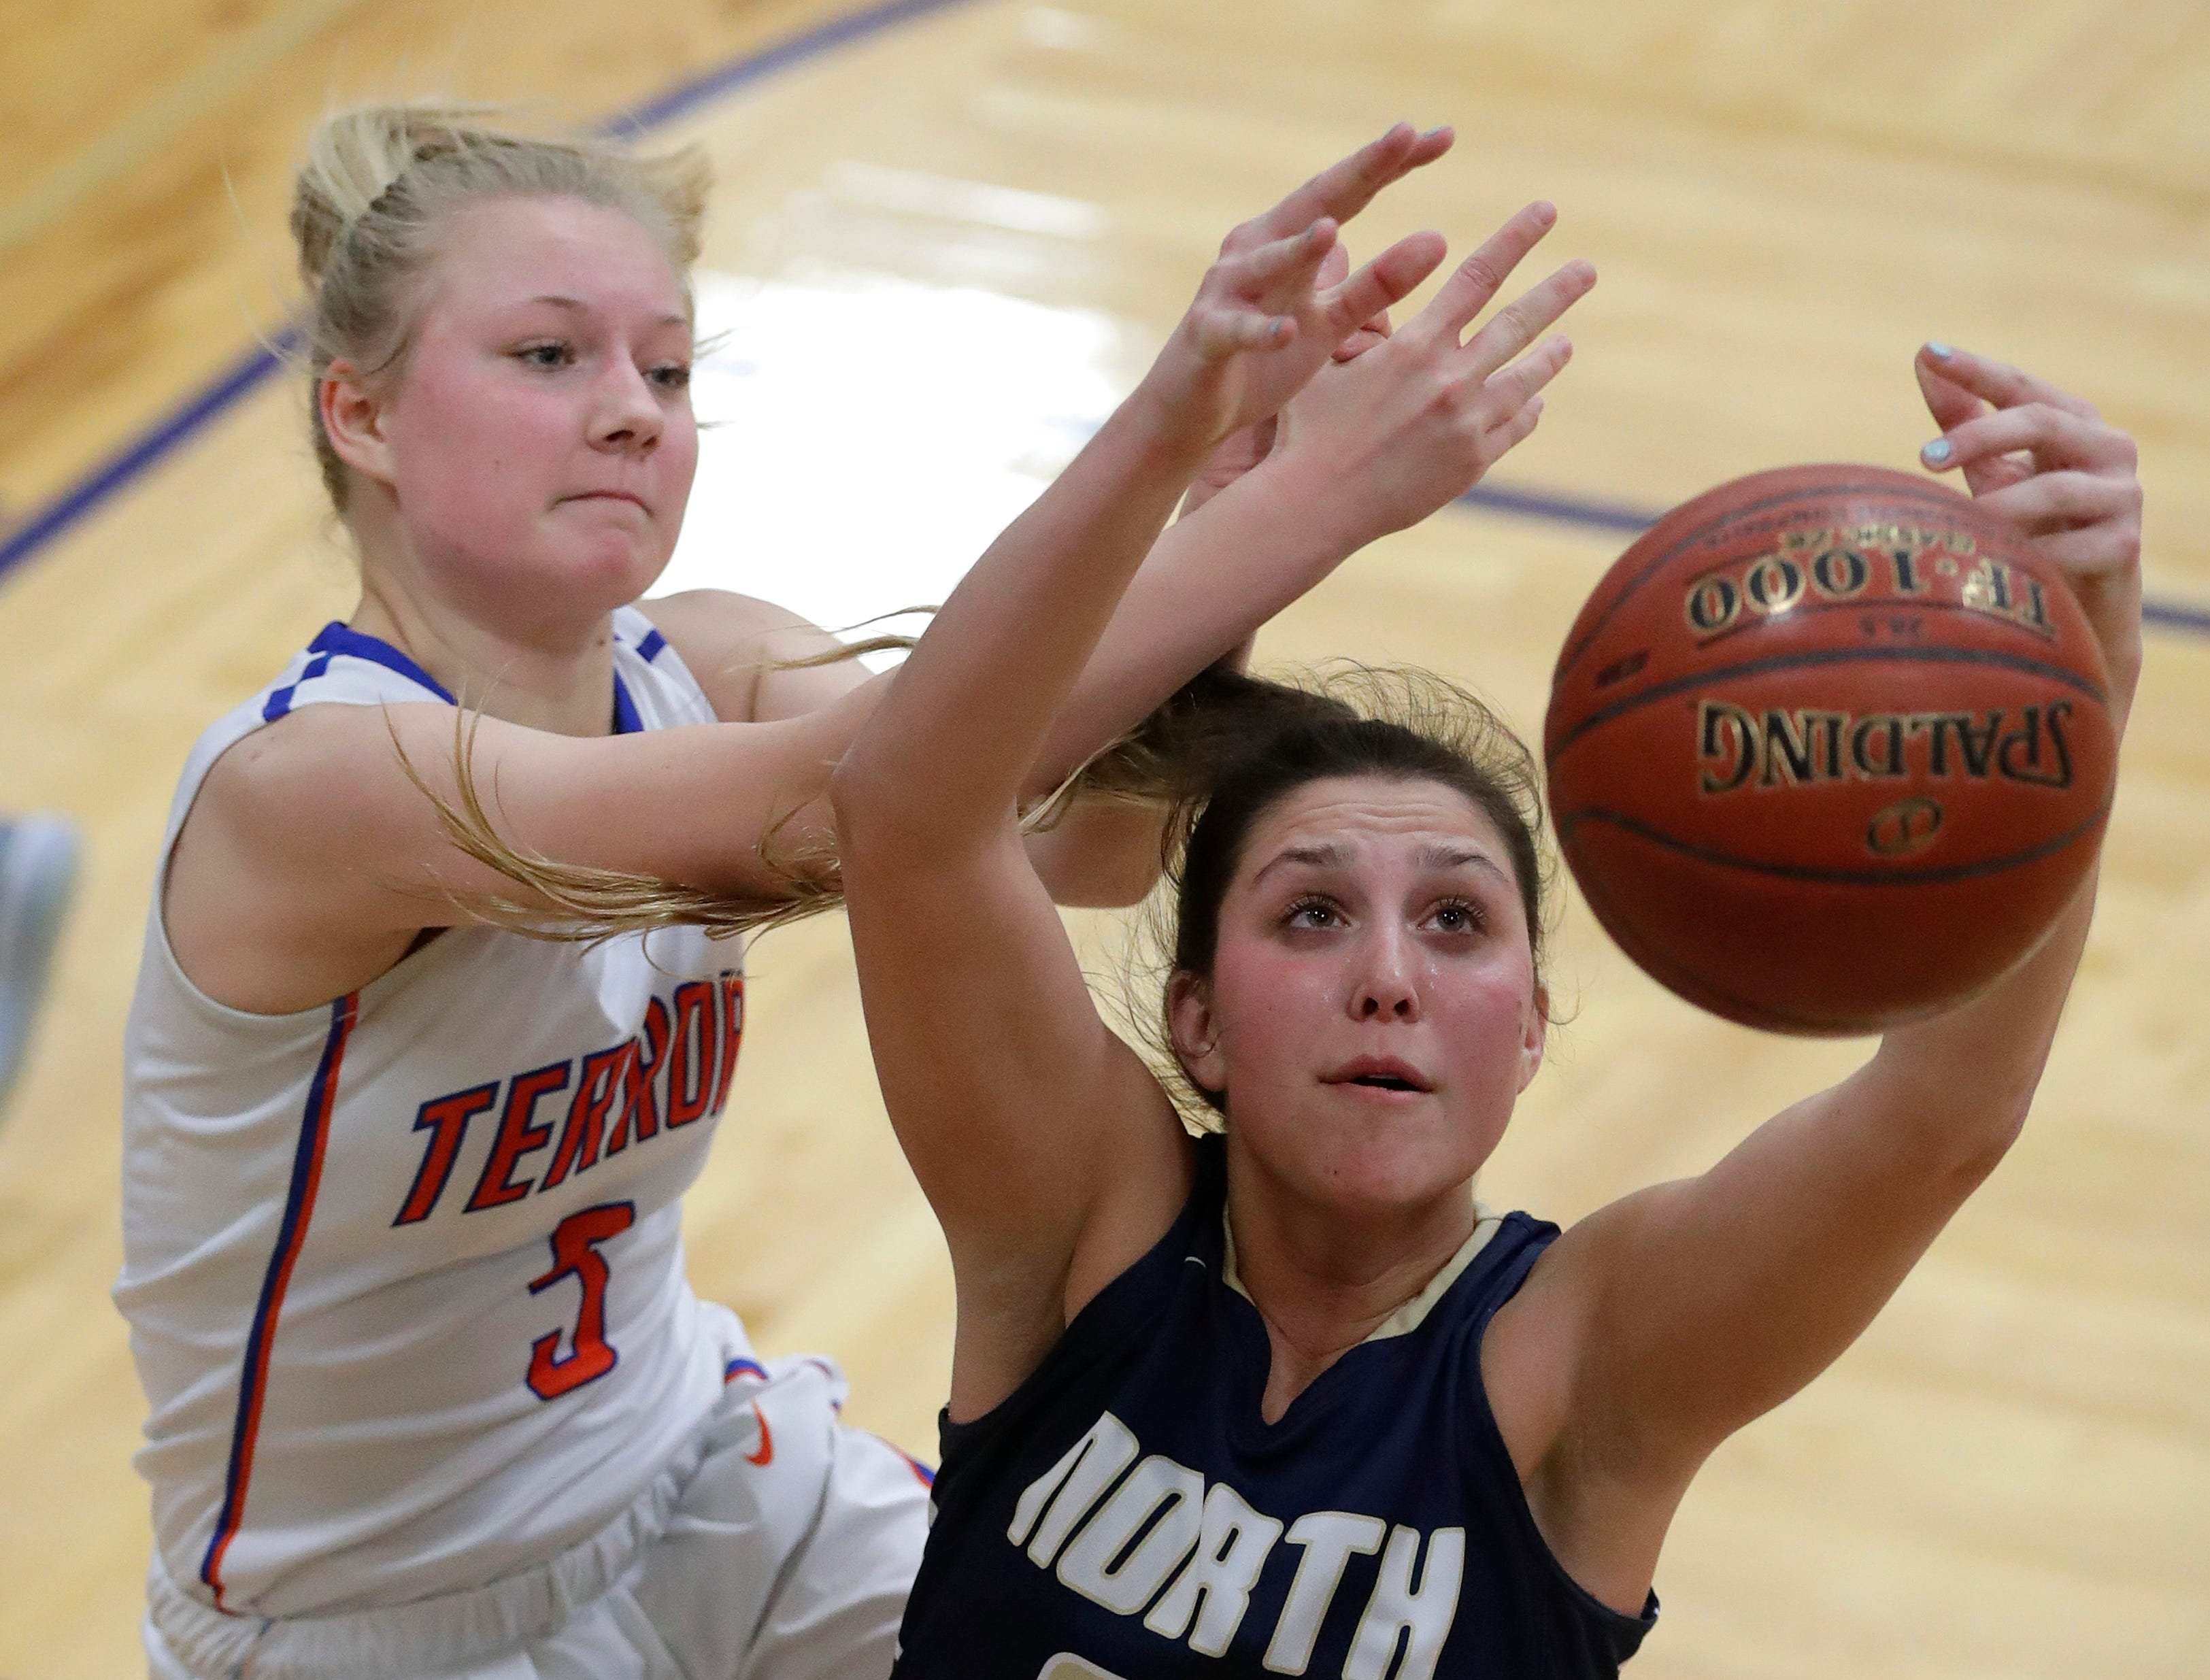 Appleton West High School's Bree Workman (5) defends against Appleton North High School's Paige Schabo (23) during their girls basketball game Friday, January 25, 2019, at Appleton West High School in Appleton, Wis. 